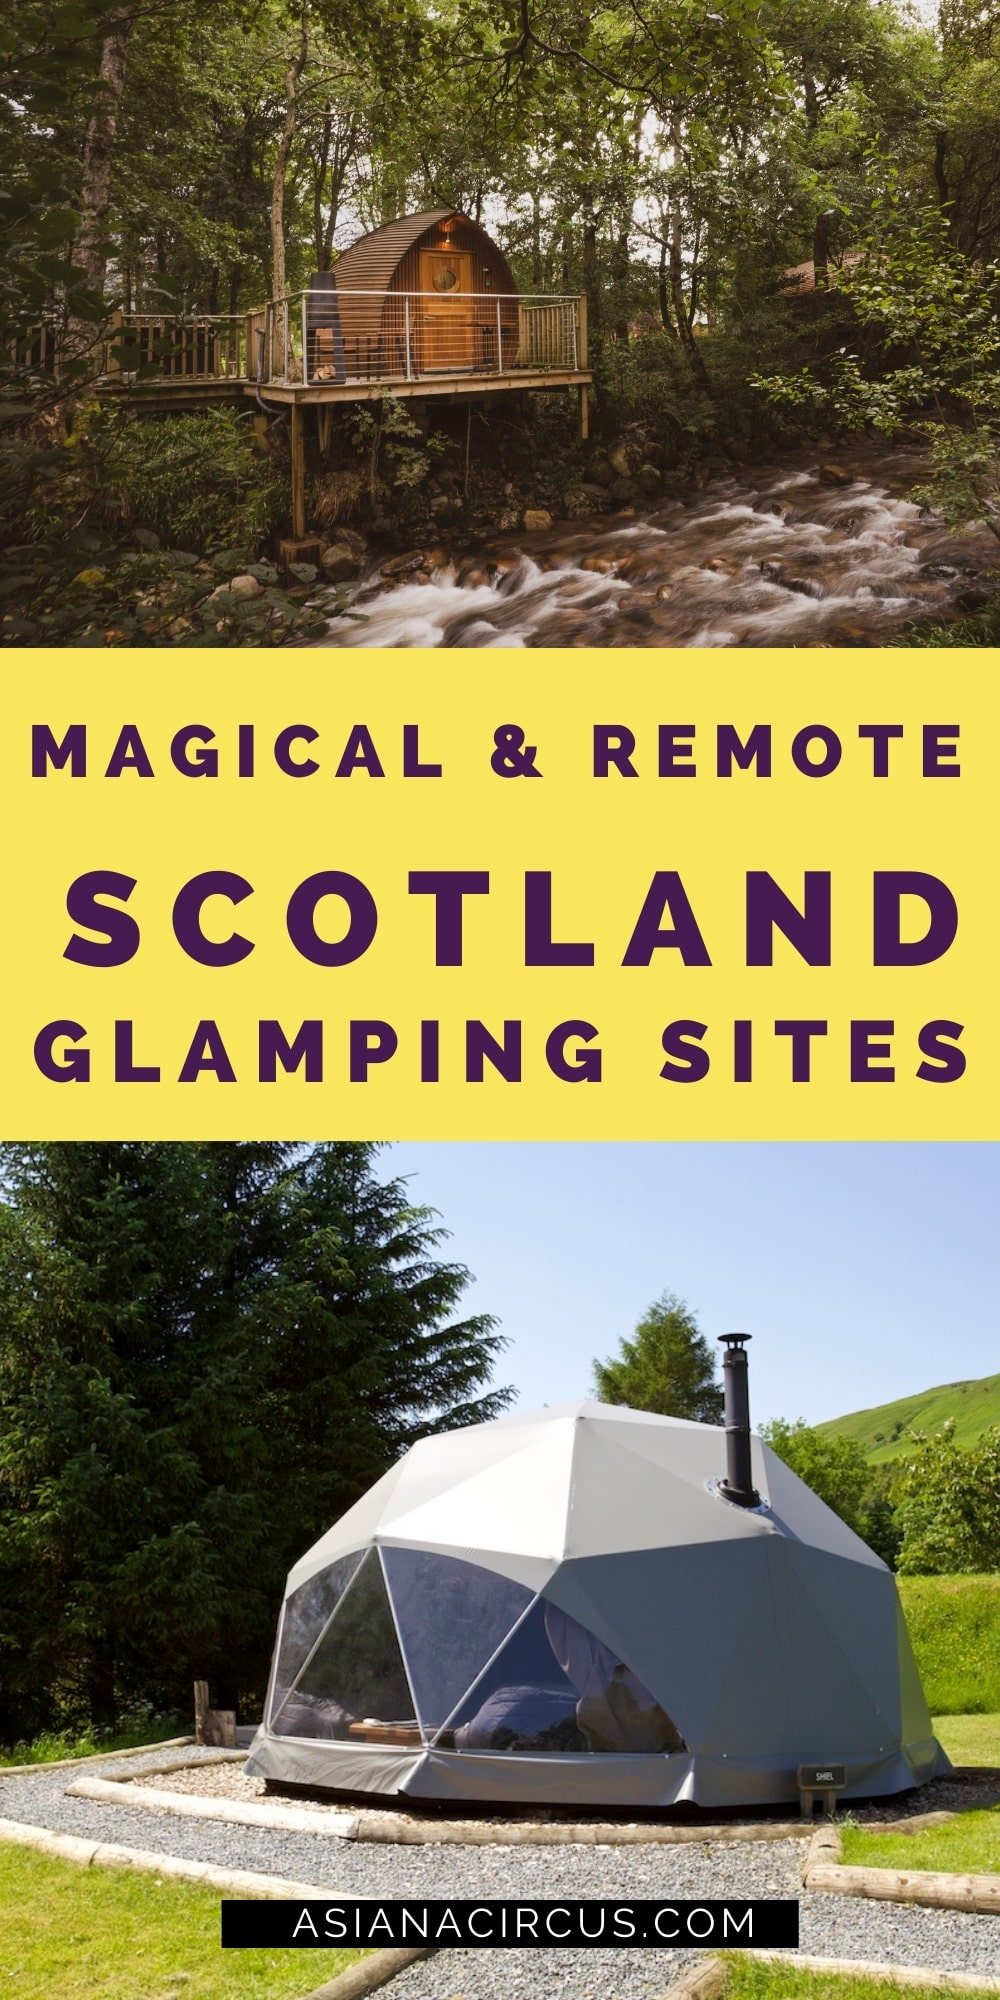 Magical & Remote Scotland Glamping Sites (3)